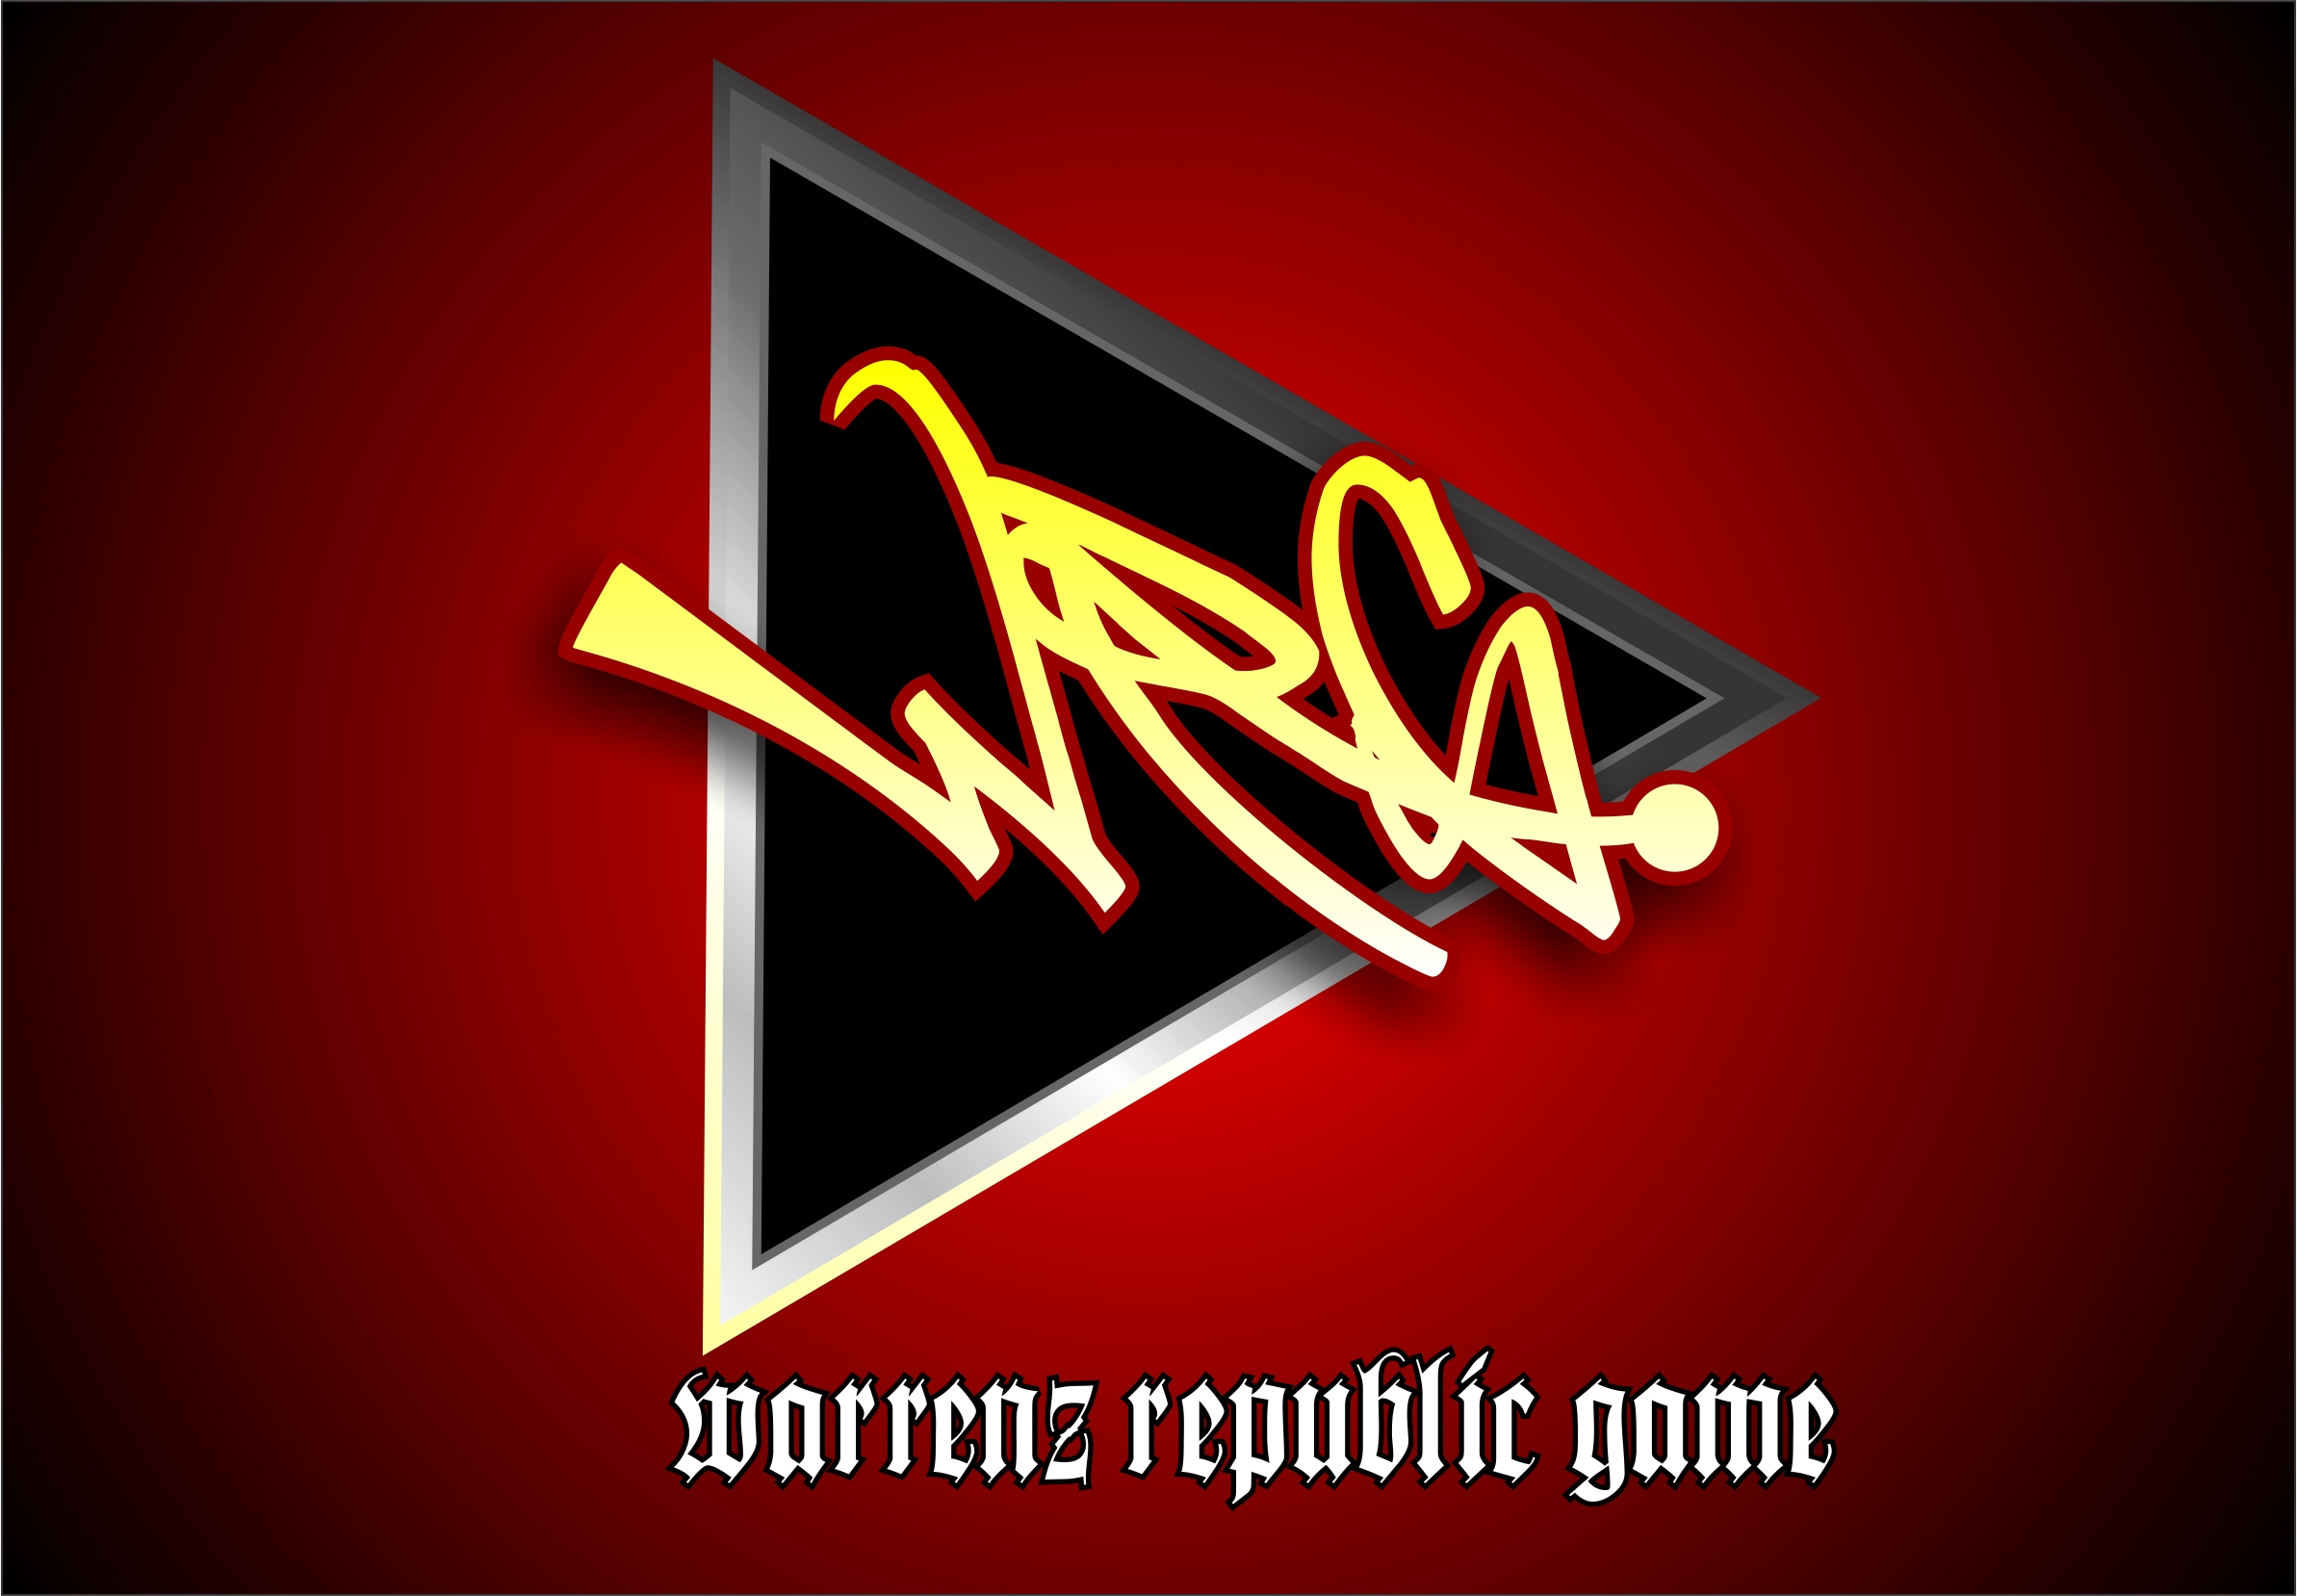 Logo Design by althea - Entry No. 19 in the Logo Design Contest Logo Design Needed for Exciting New Company Warrenz Republic Game.